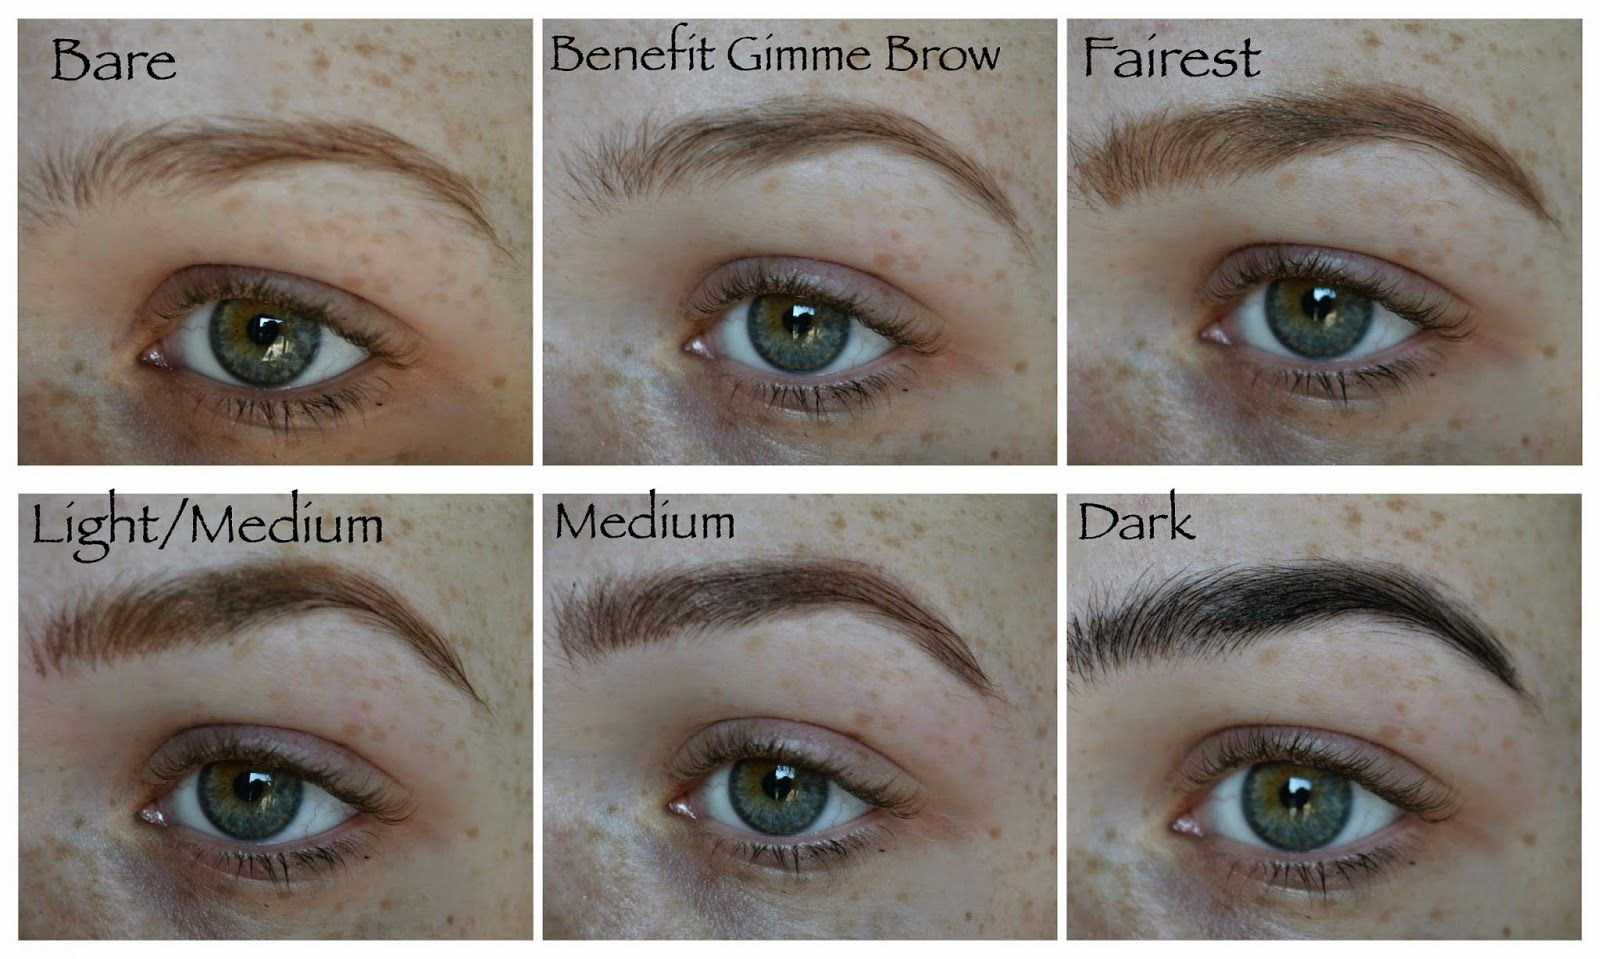 Brow Swatches Of An Entire Line Of Amazing Brow Gel